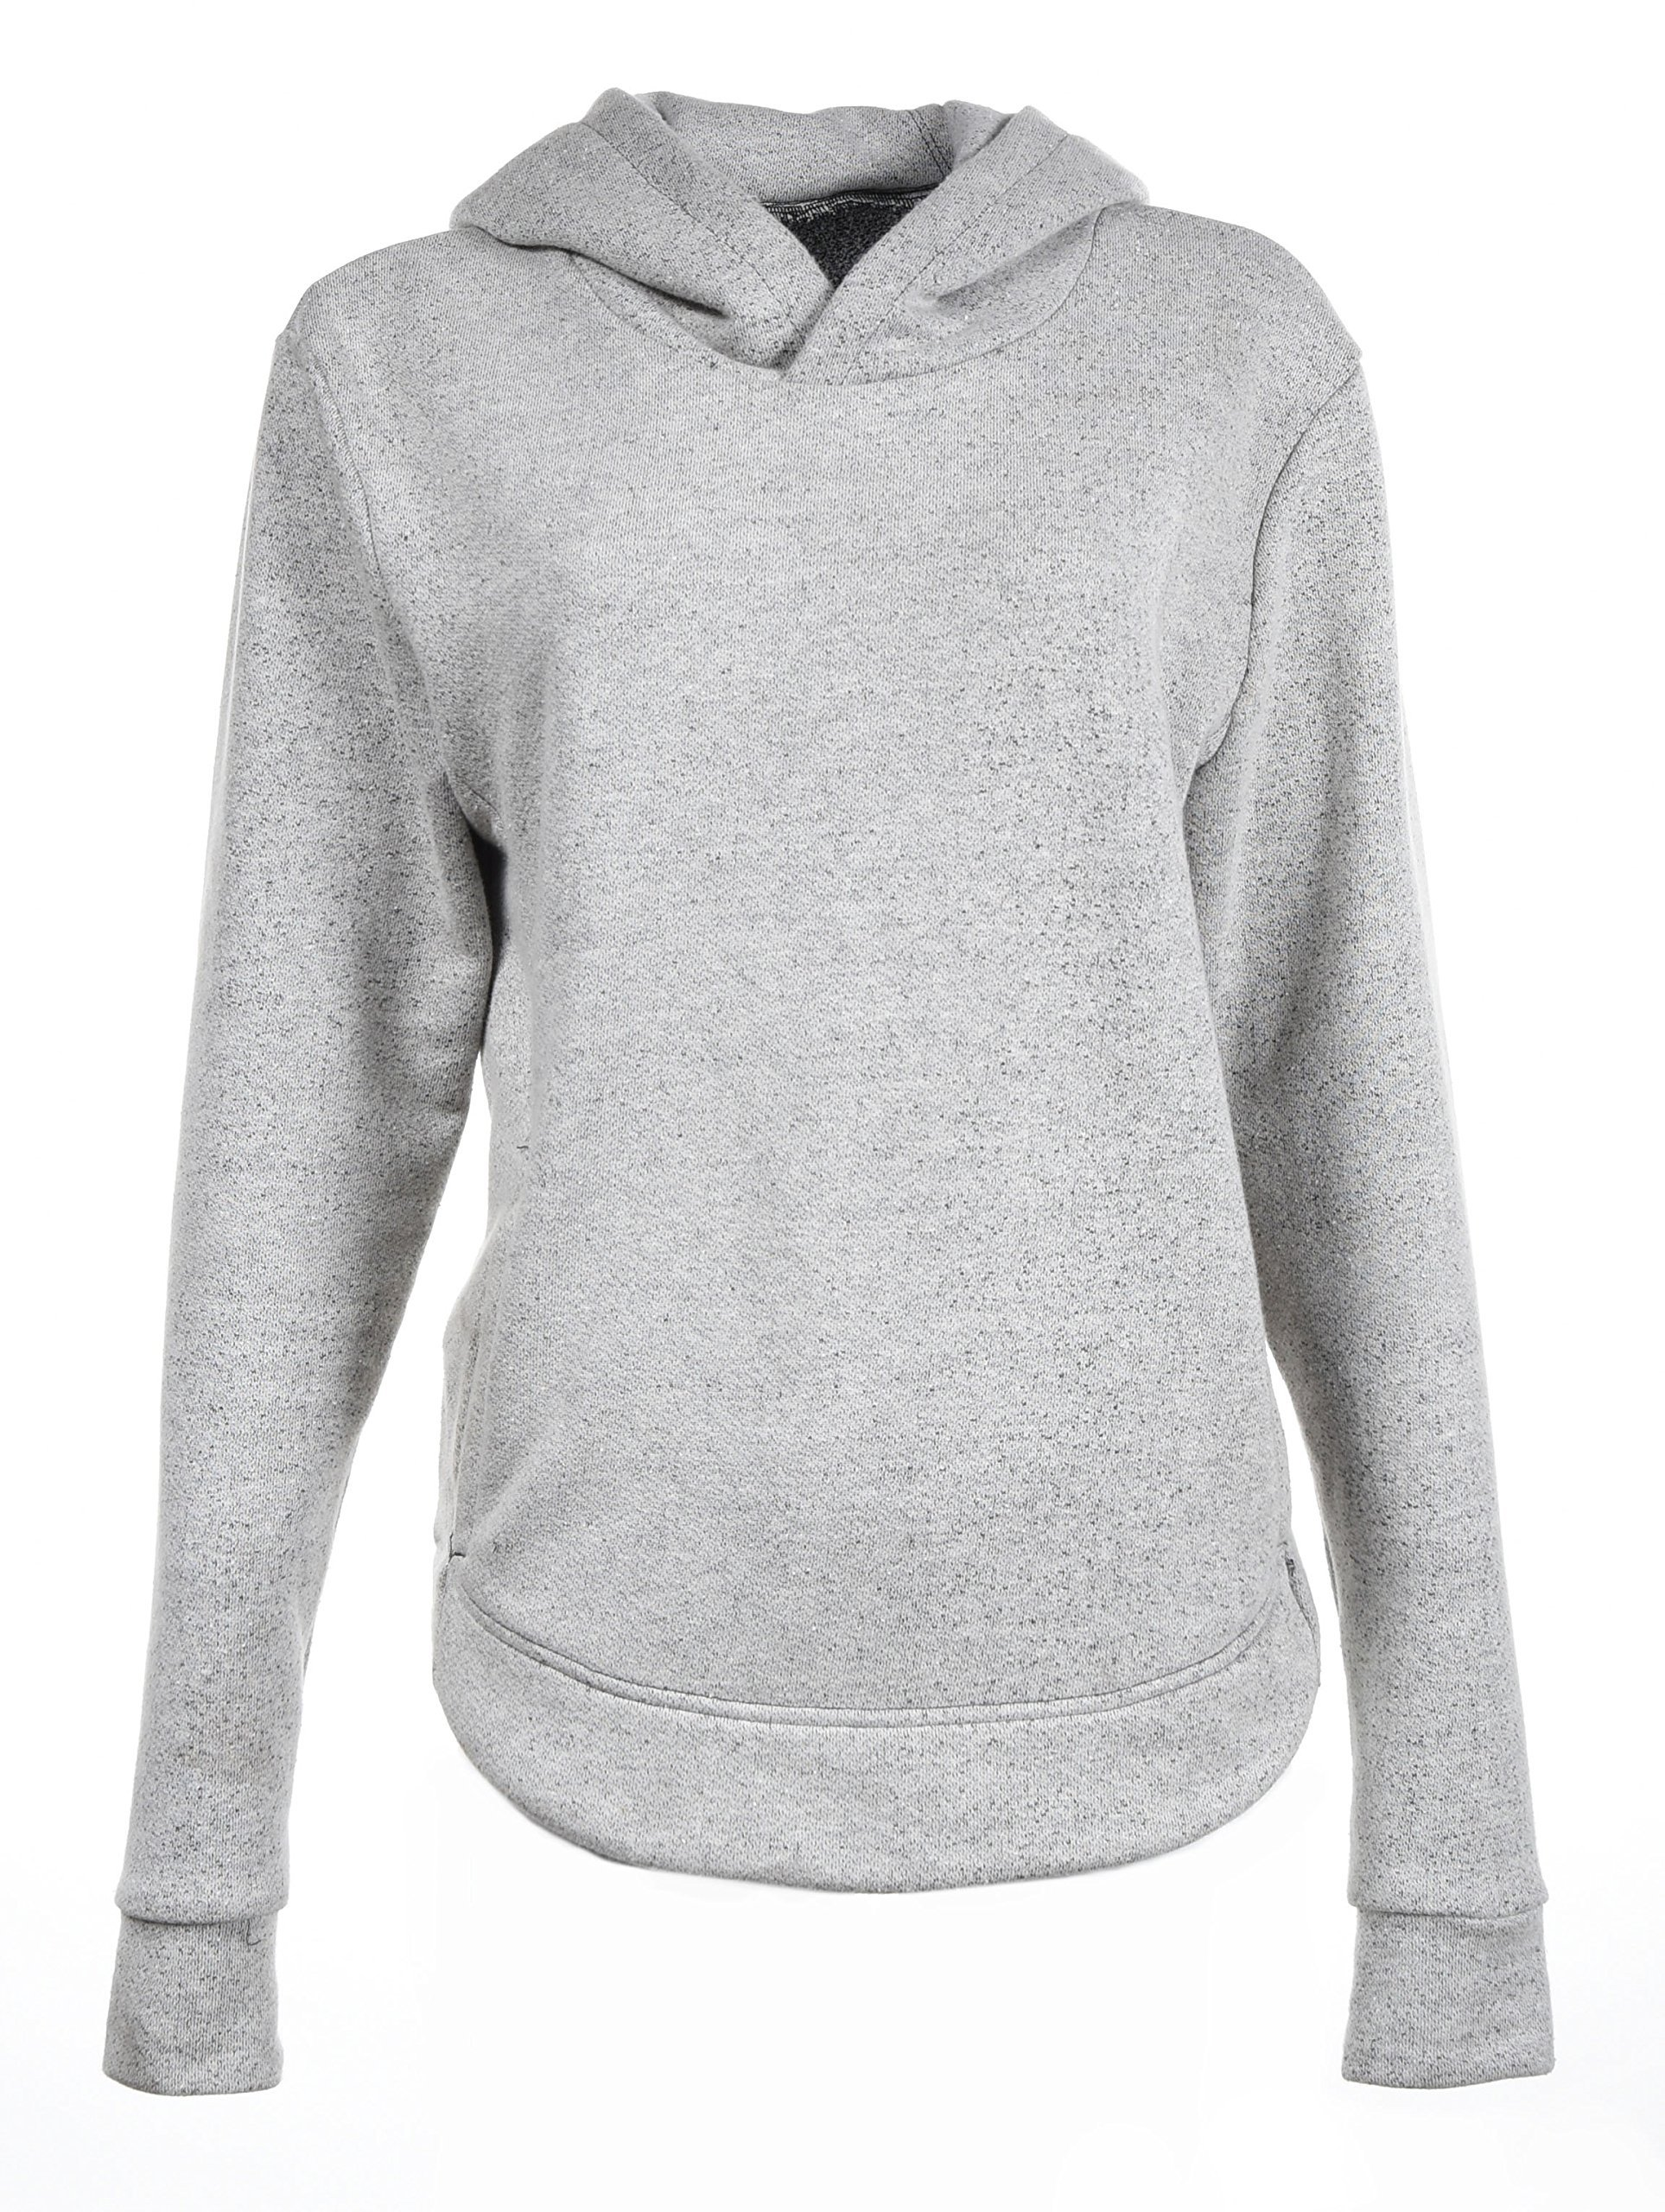 A1 Fitted Pullover, Heather Grey, Small by Aros